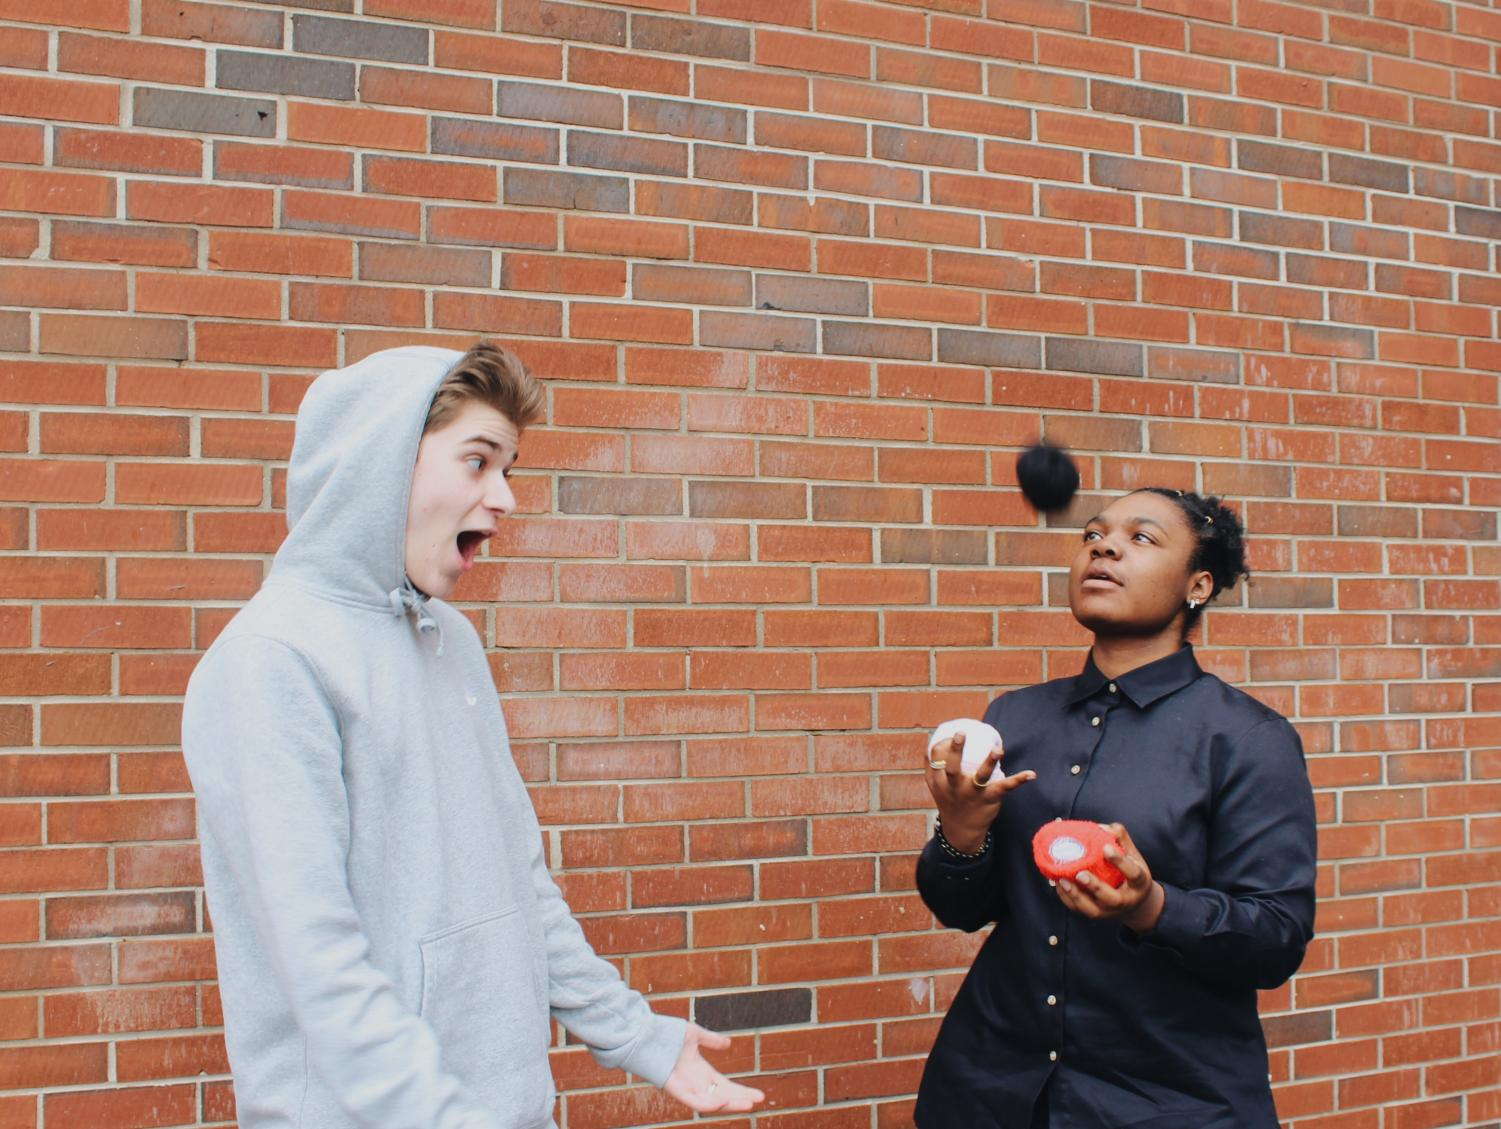 """Juniors Evan Chighizola and Skai Farmer practice juggling as spring approaches. Students engage in a variety of activities as the weather warms up, with juggling as a unique talent. Other activities, such as hiking and picnicking, allow students to enjoy the warmer weather. """"The weather being warmer is really making everyone happier and making us want to do more of the things we love,"""" Chighizola said."""